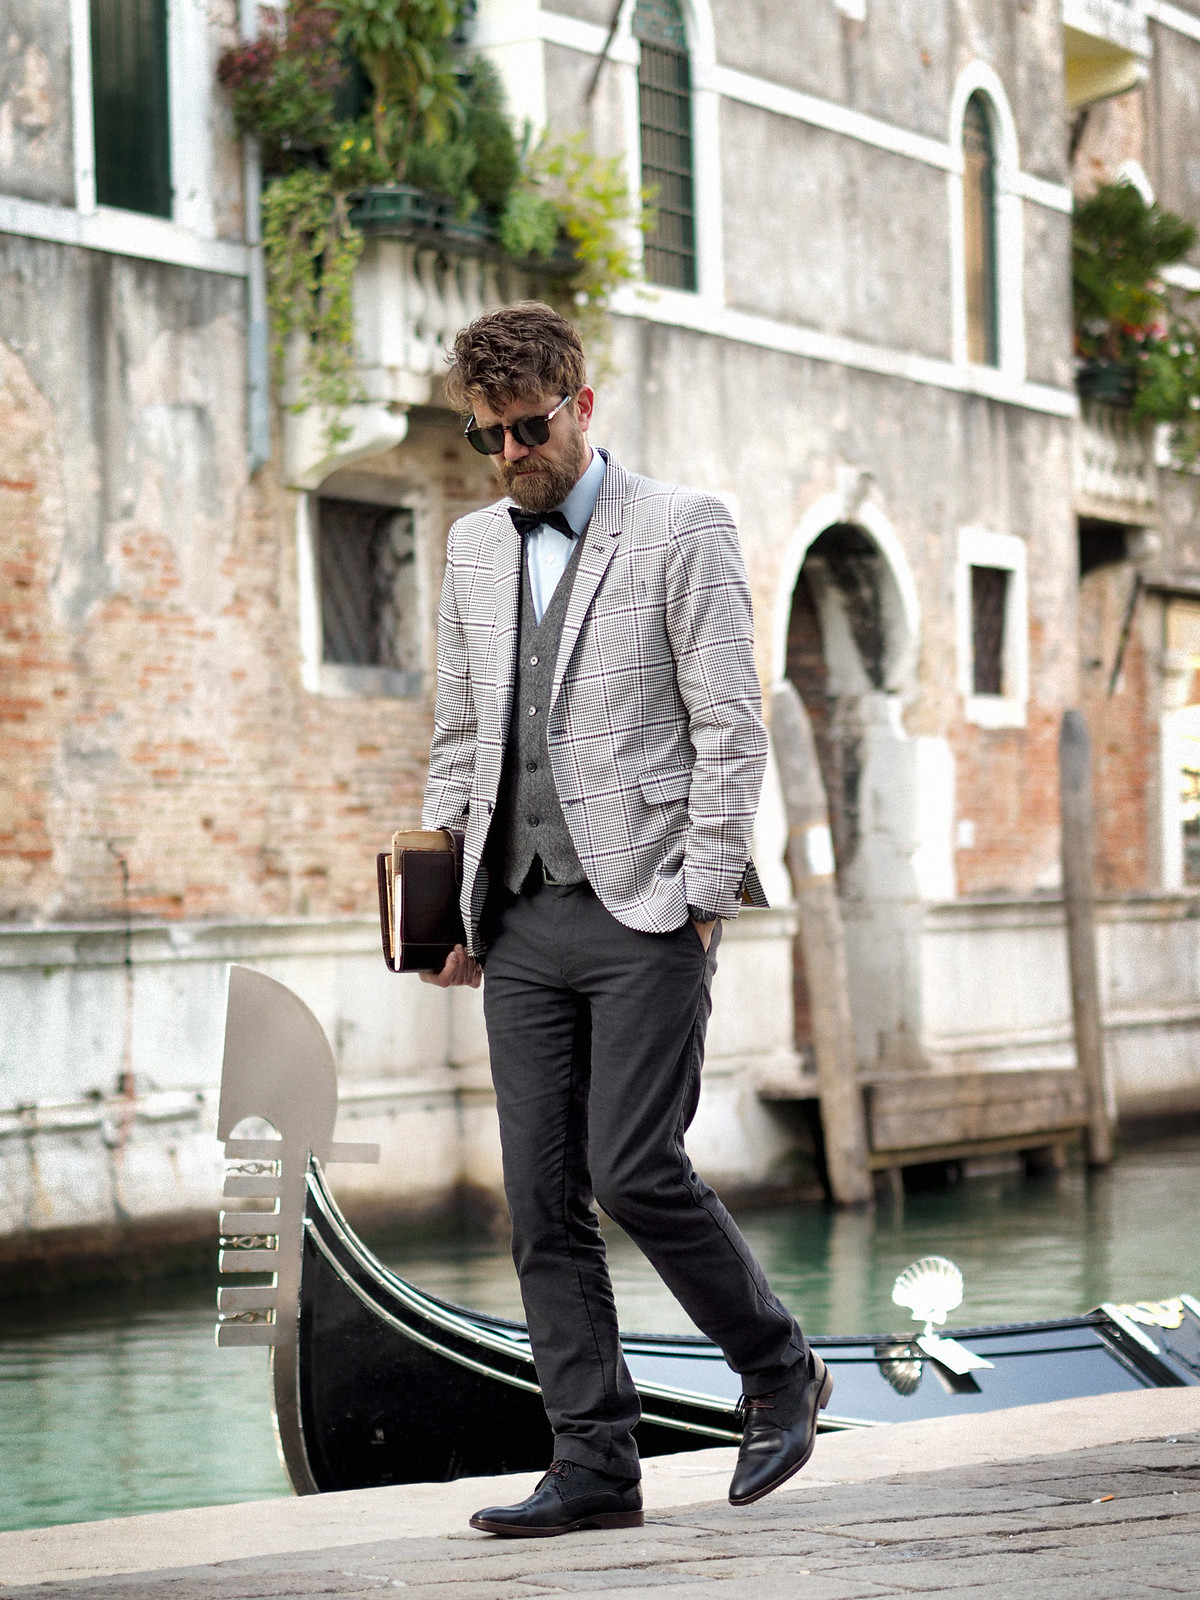 outfit professor glen check blazer autumn trend persol sunglasses intellectual style uni university prof sacha shoes bow tie elegant dandy style indiana jones venice look cats & dogs blog max bechmann 7